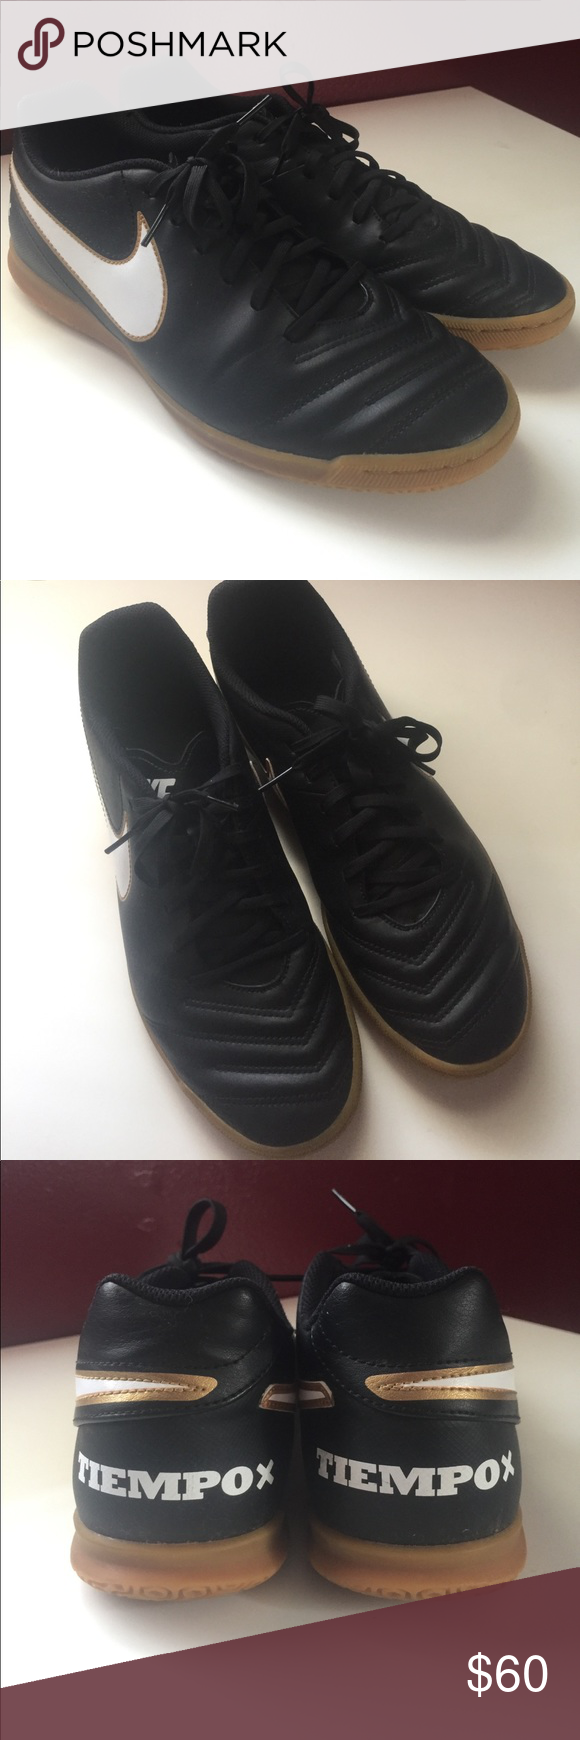 Men's TiempoX Nike indoor soccer cleats Men's black and gold TiempoX indoor soccer cleats in a size 10 with gum soles. Gently used -- only played in them twice (see last photo to see clean soles). Great condition. Price negotiable! 🌸 Nike Shoes Athletic Shoes